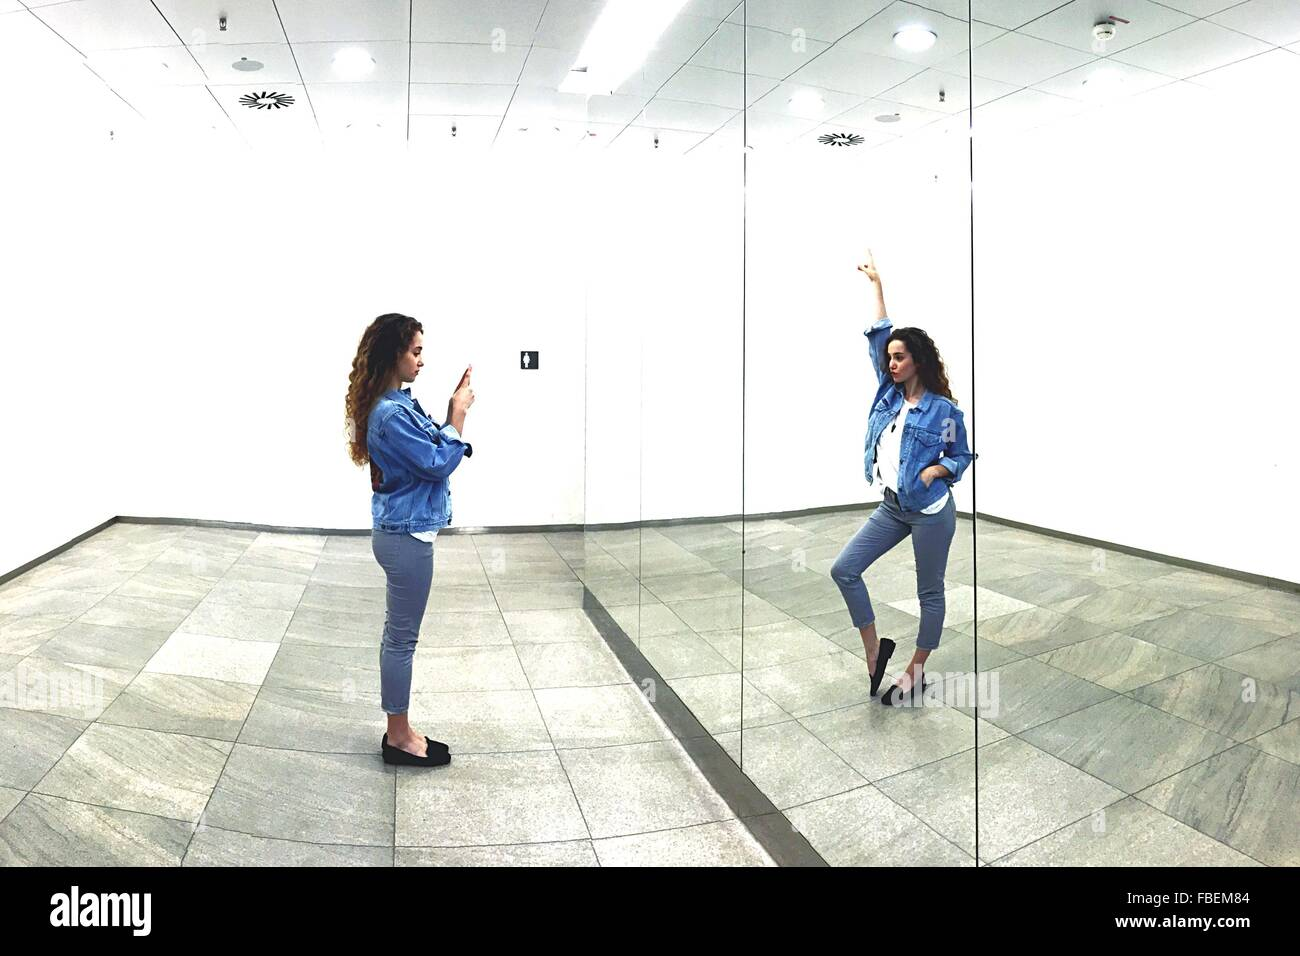 Digitally Generated Image Of Woman Photographing Herself In Mirror At Illuminated Room - Stock Image